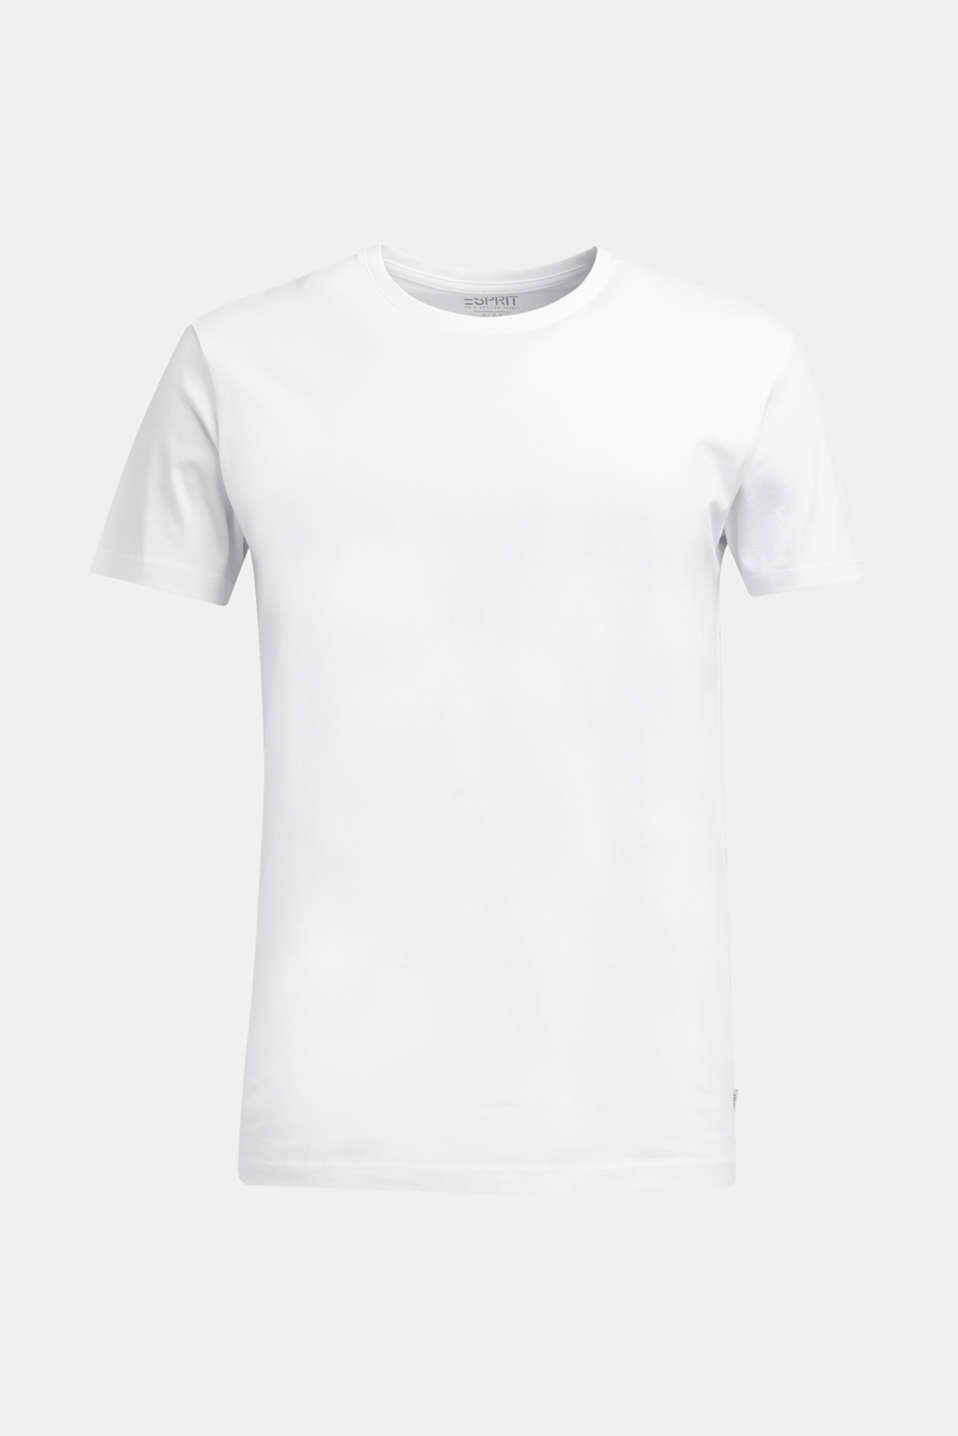 Jersey T-shirt in a basic look, 100% cotton, WHITE, detail image number 6